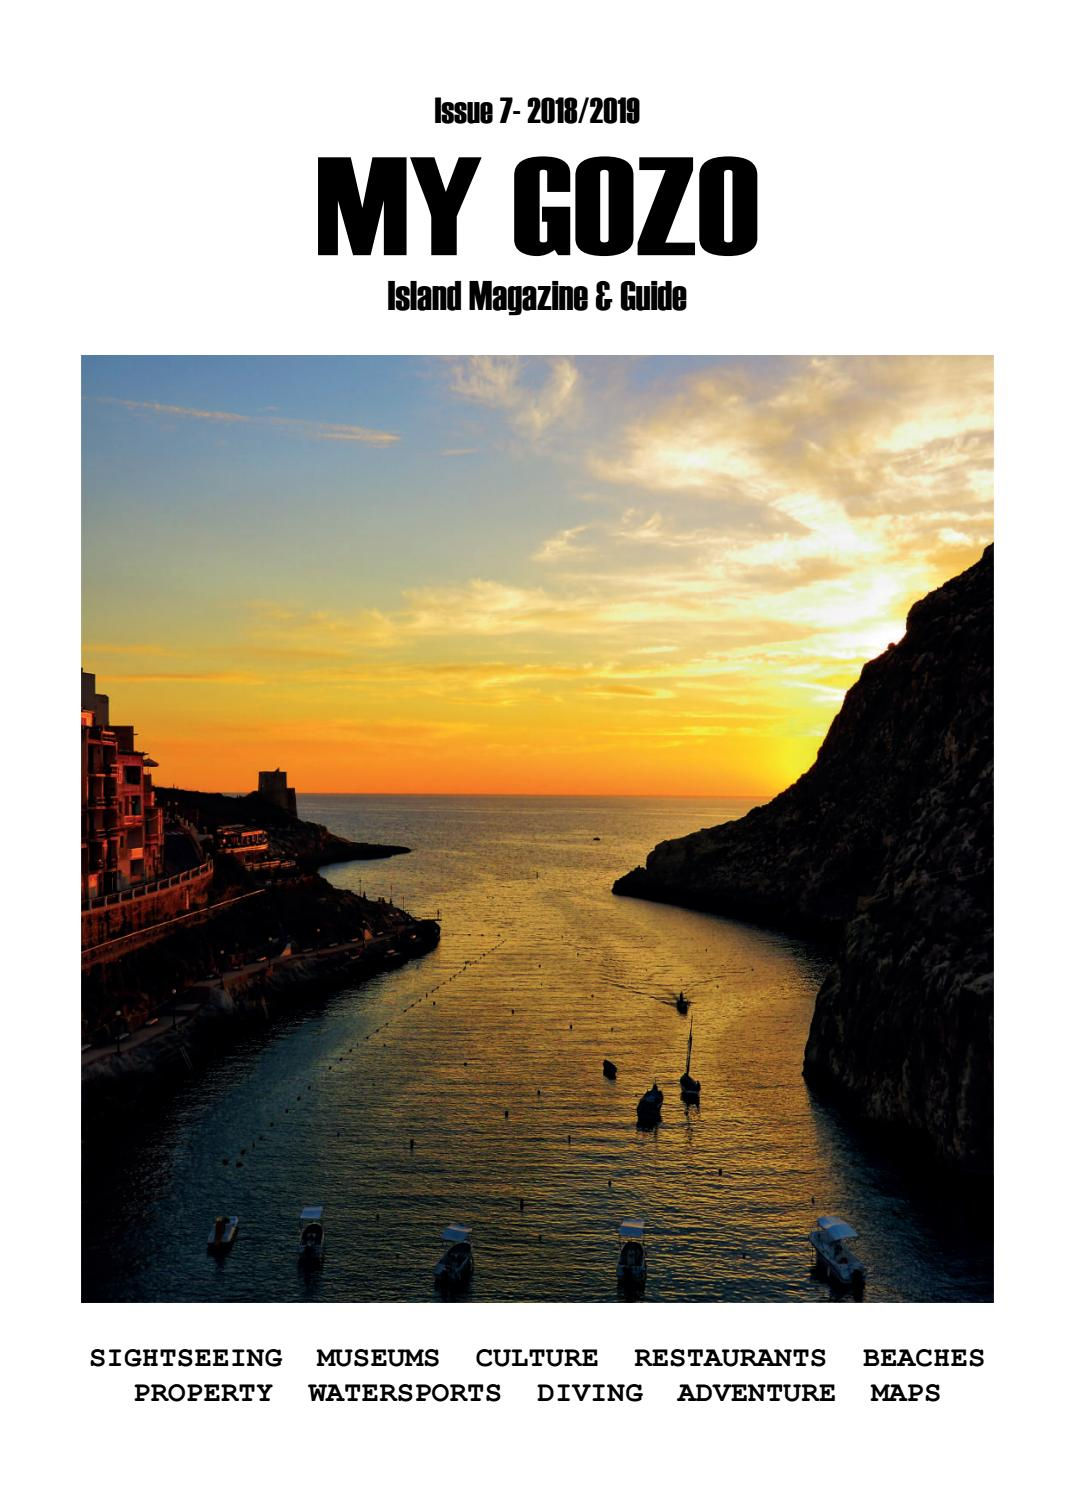 My Gozo Magazine 2018/19 by My Gozo - issuu